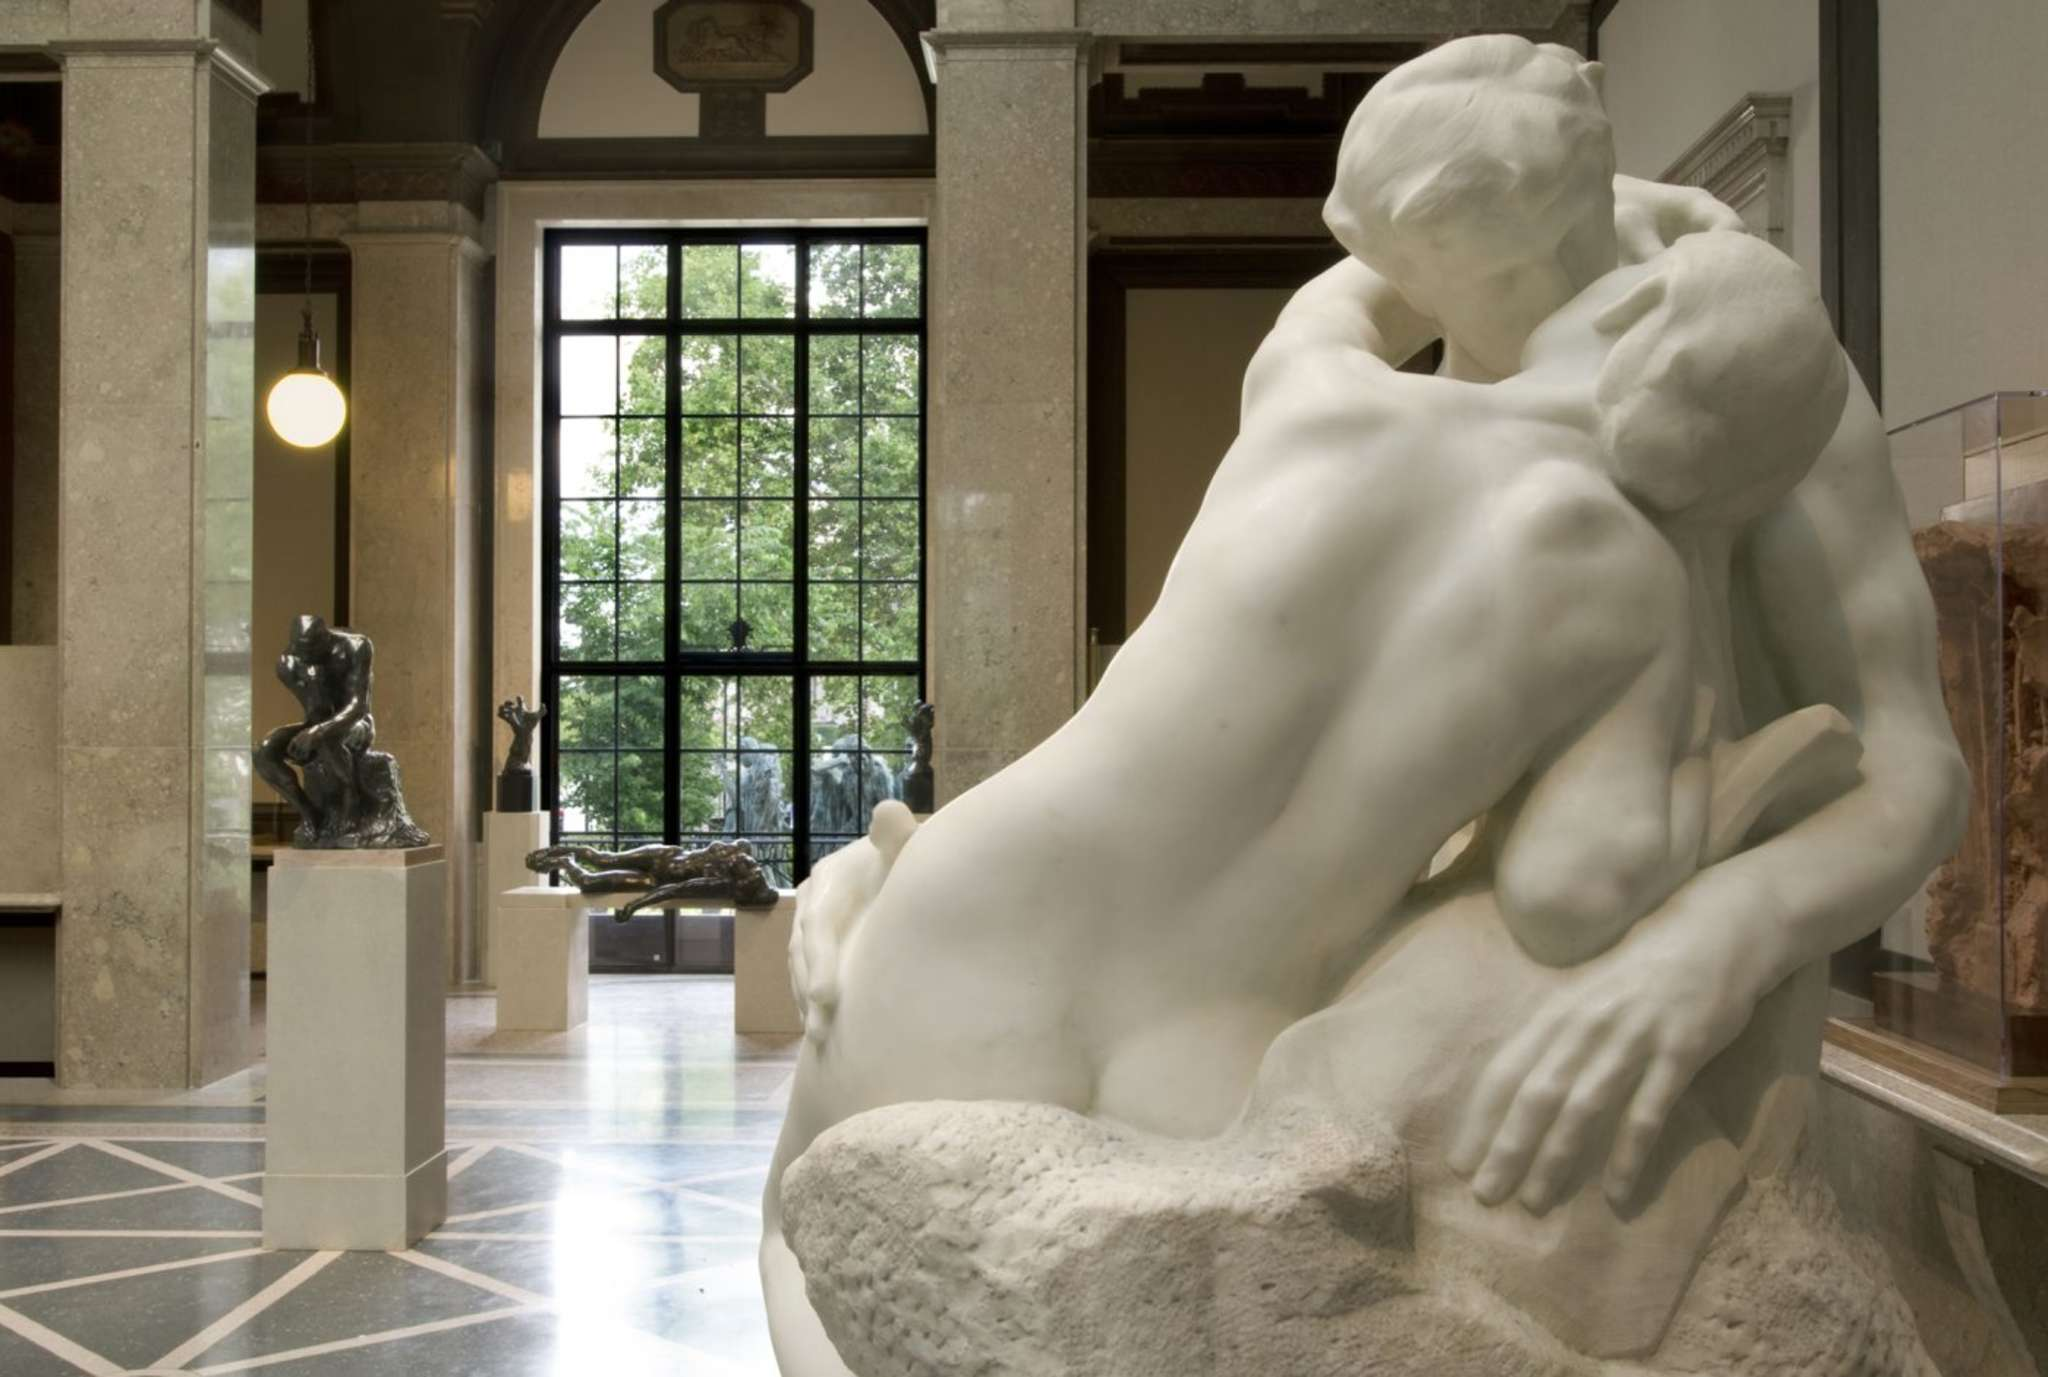 """This is the marble replica of the sculpture """"The Kiss"""" that stands in the Parkway galleries of Philadelphia´s Rodin Museum. The original is on display in the Musee Rodin in Paris. A bronze cast created a legal battle."""